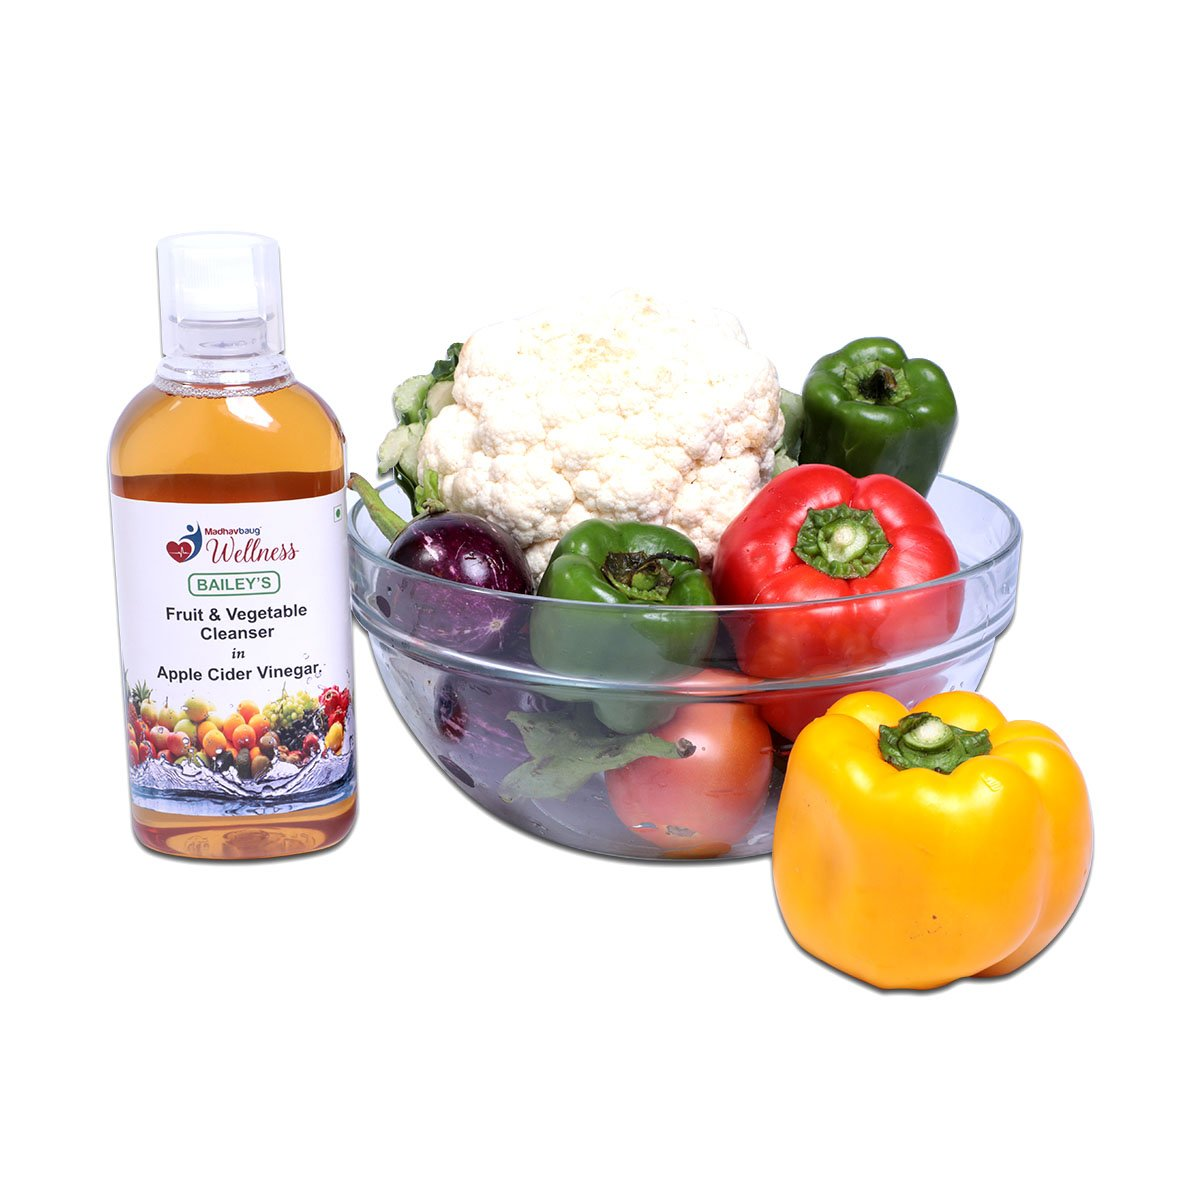 Bailey's Vegetable-cleanser